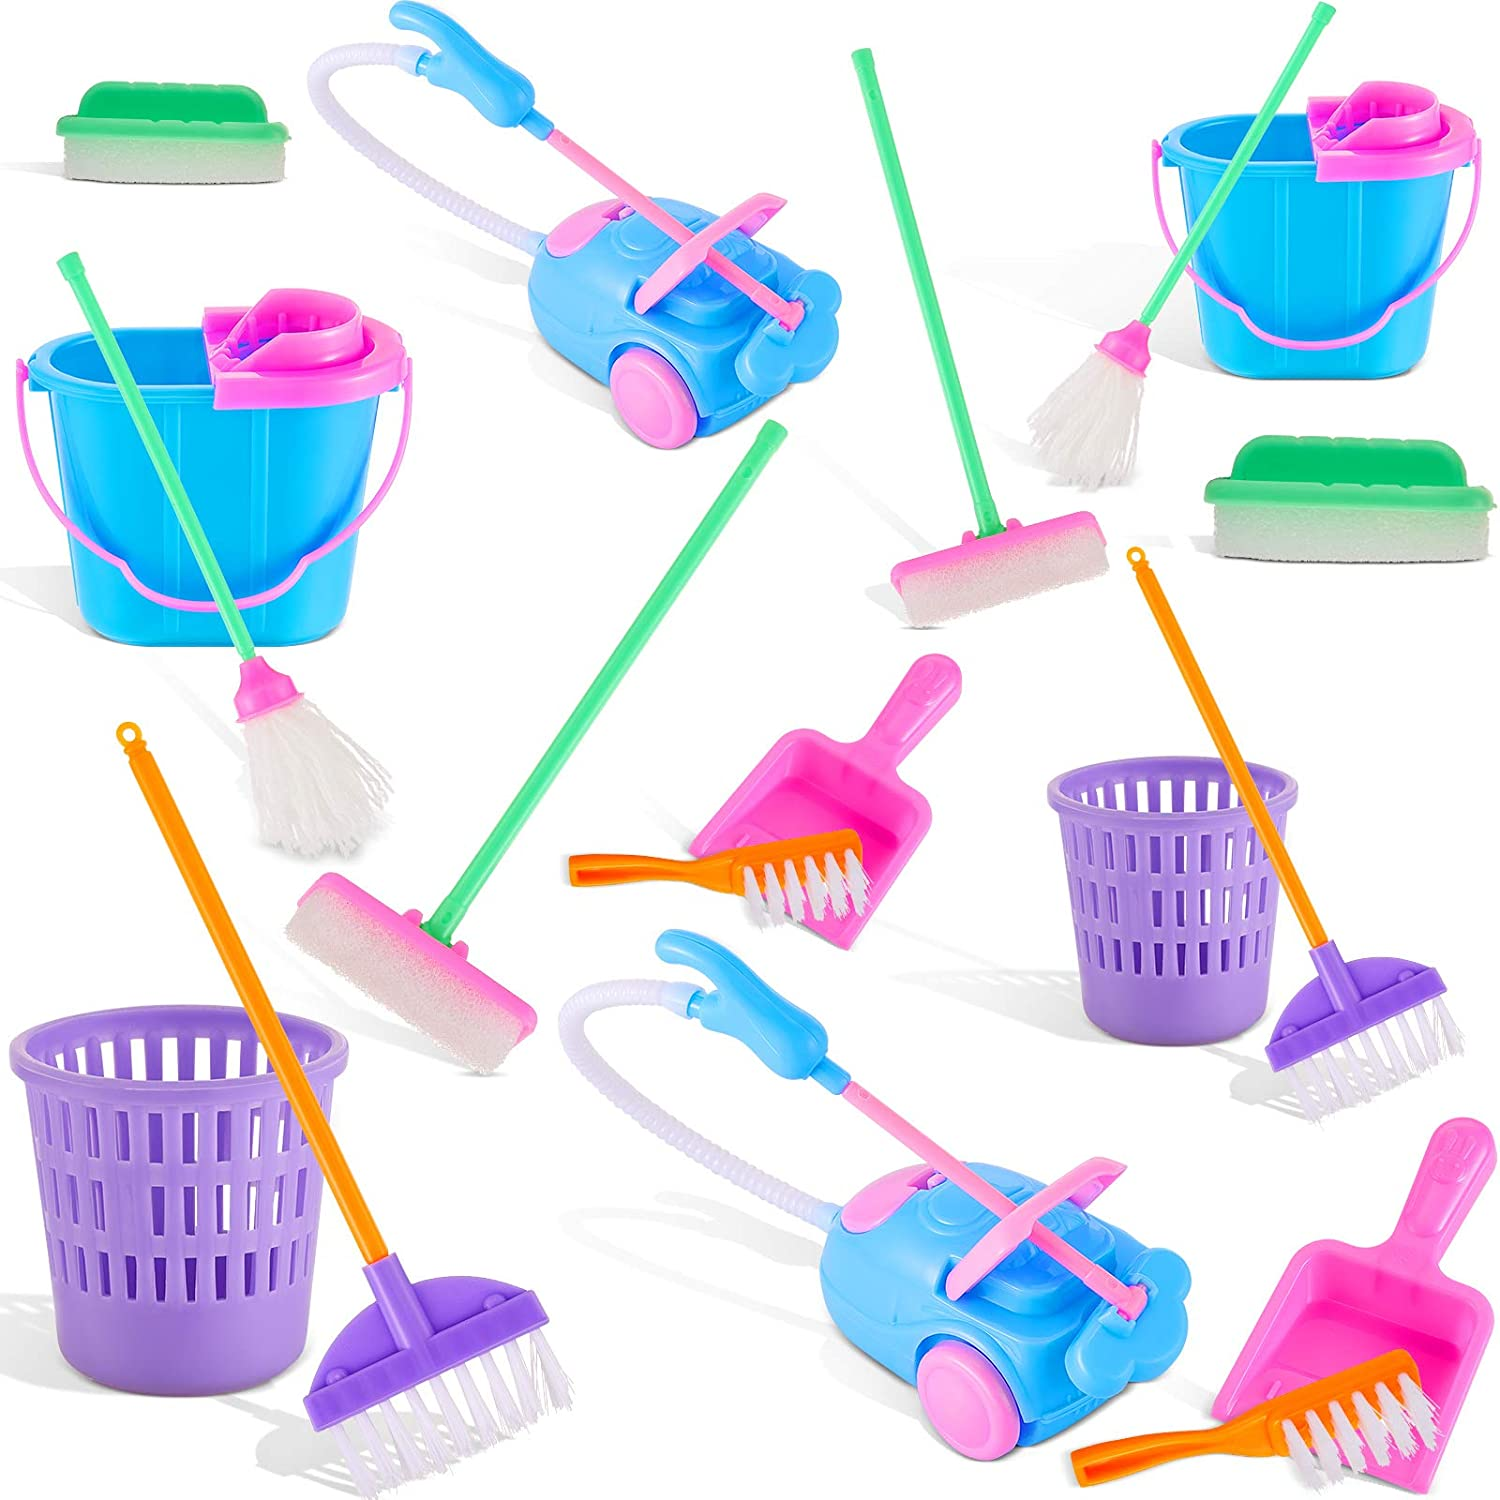 Sumind 18 Pieces Miniature Dollhouse Accessories Miniature Mop Dustpan Bucket Brush Mini Housework Cleaning Tools Pretend Play Dollhouse Furniture Garden Accessories Toys for Dolls